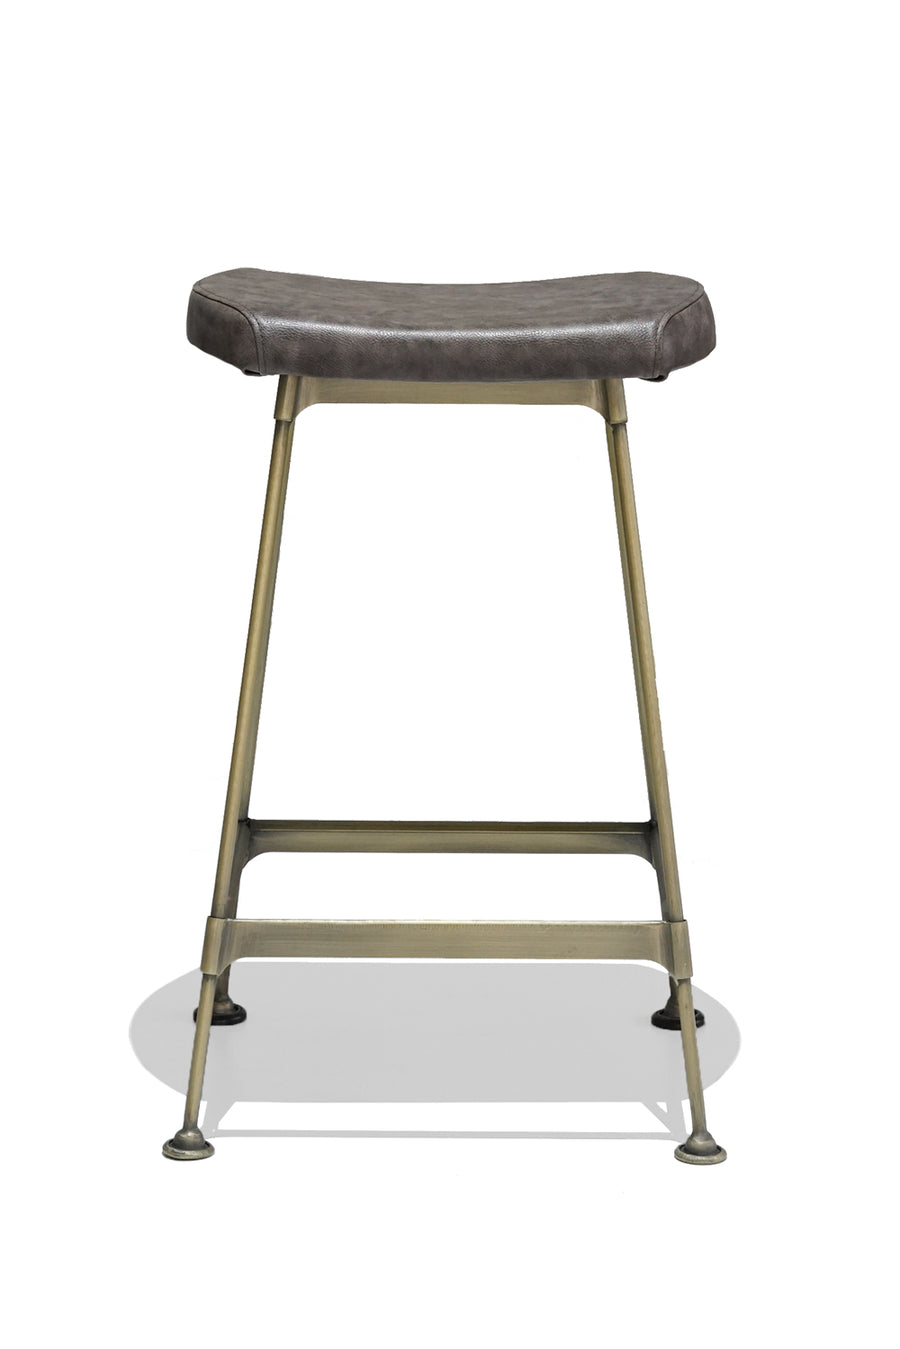 HUBERT kitchen stool - upholstered